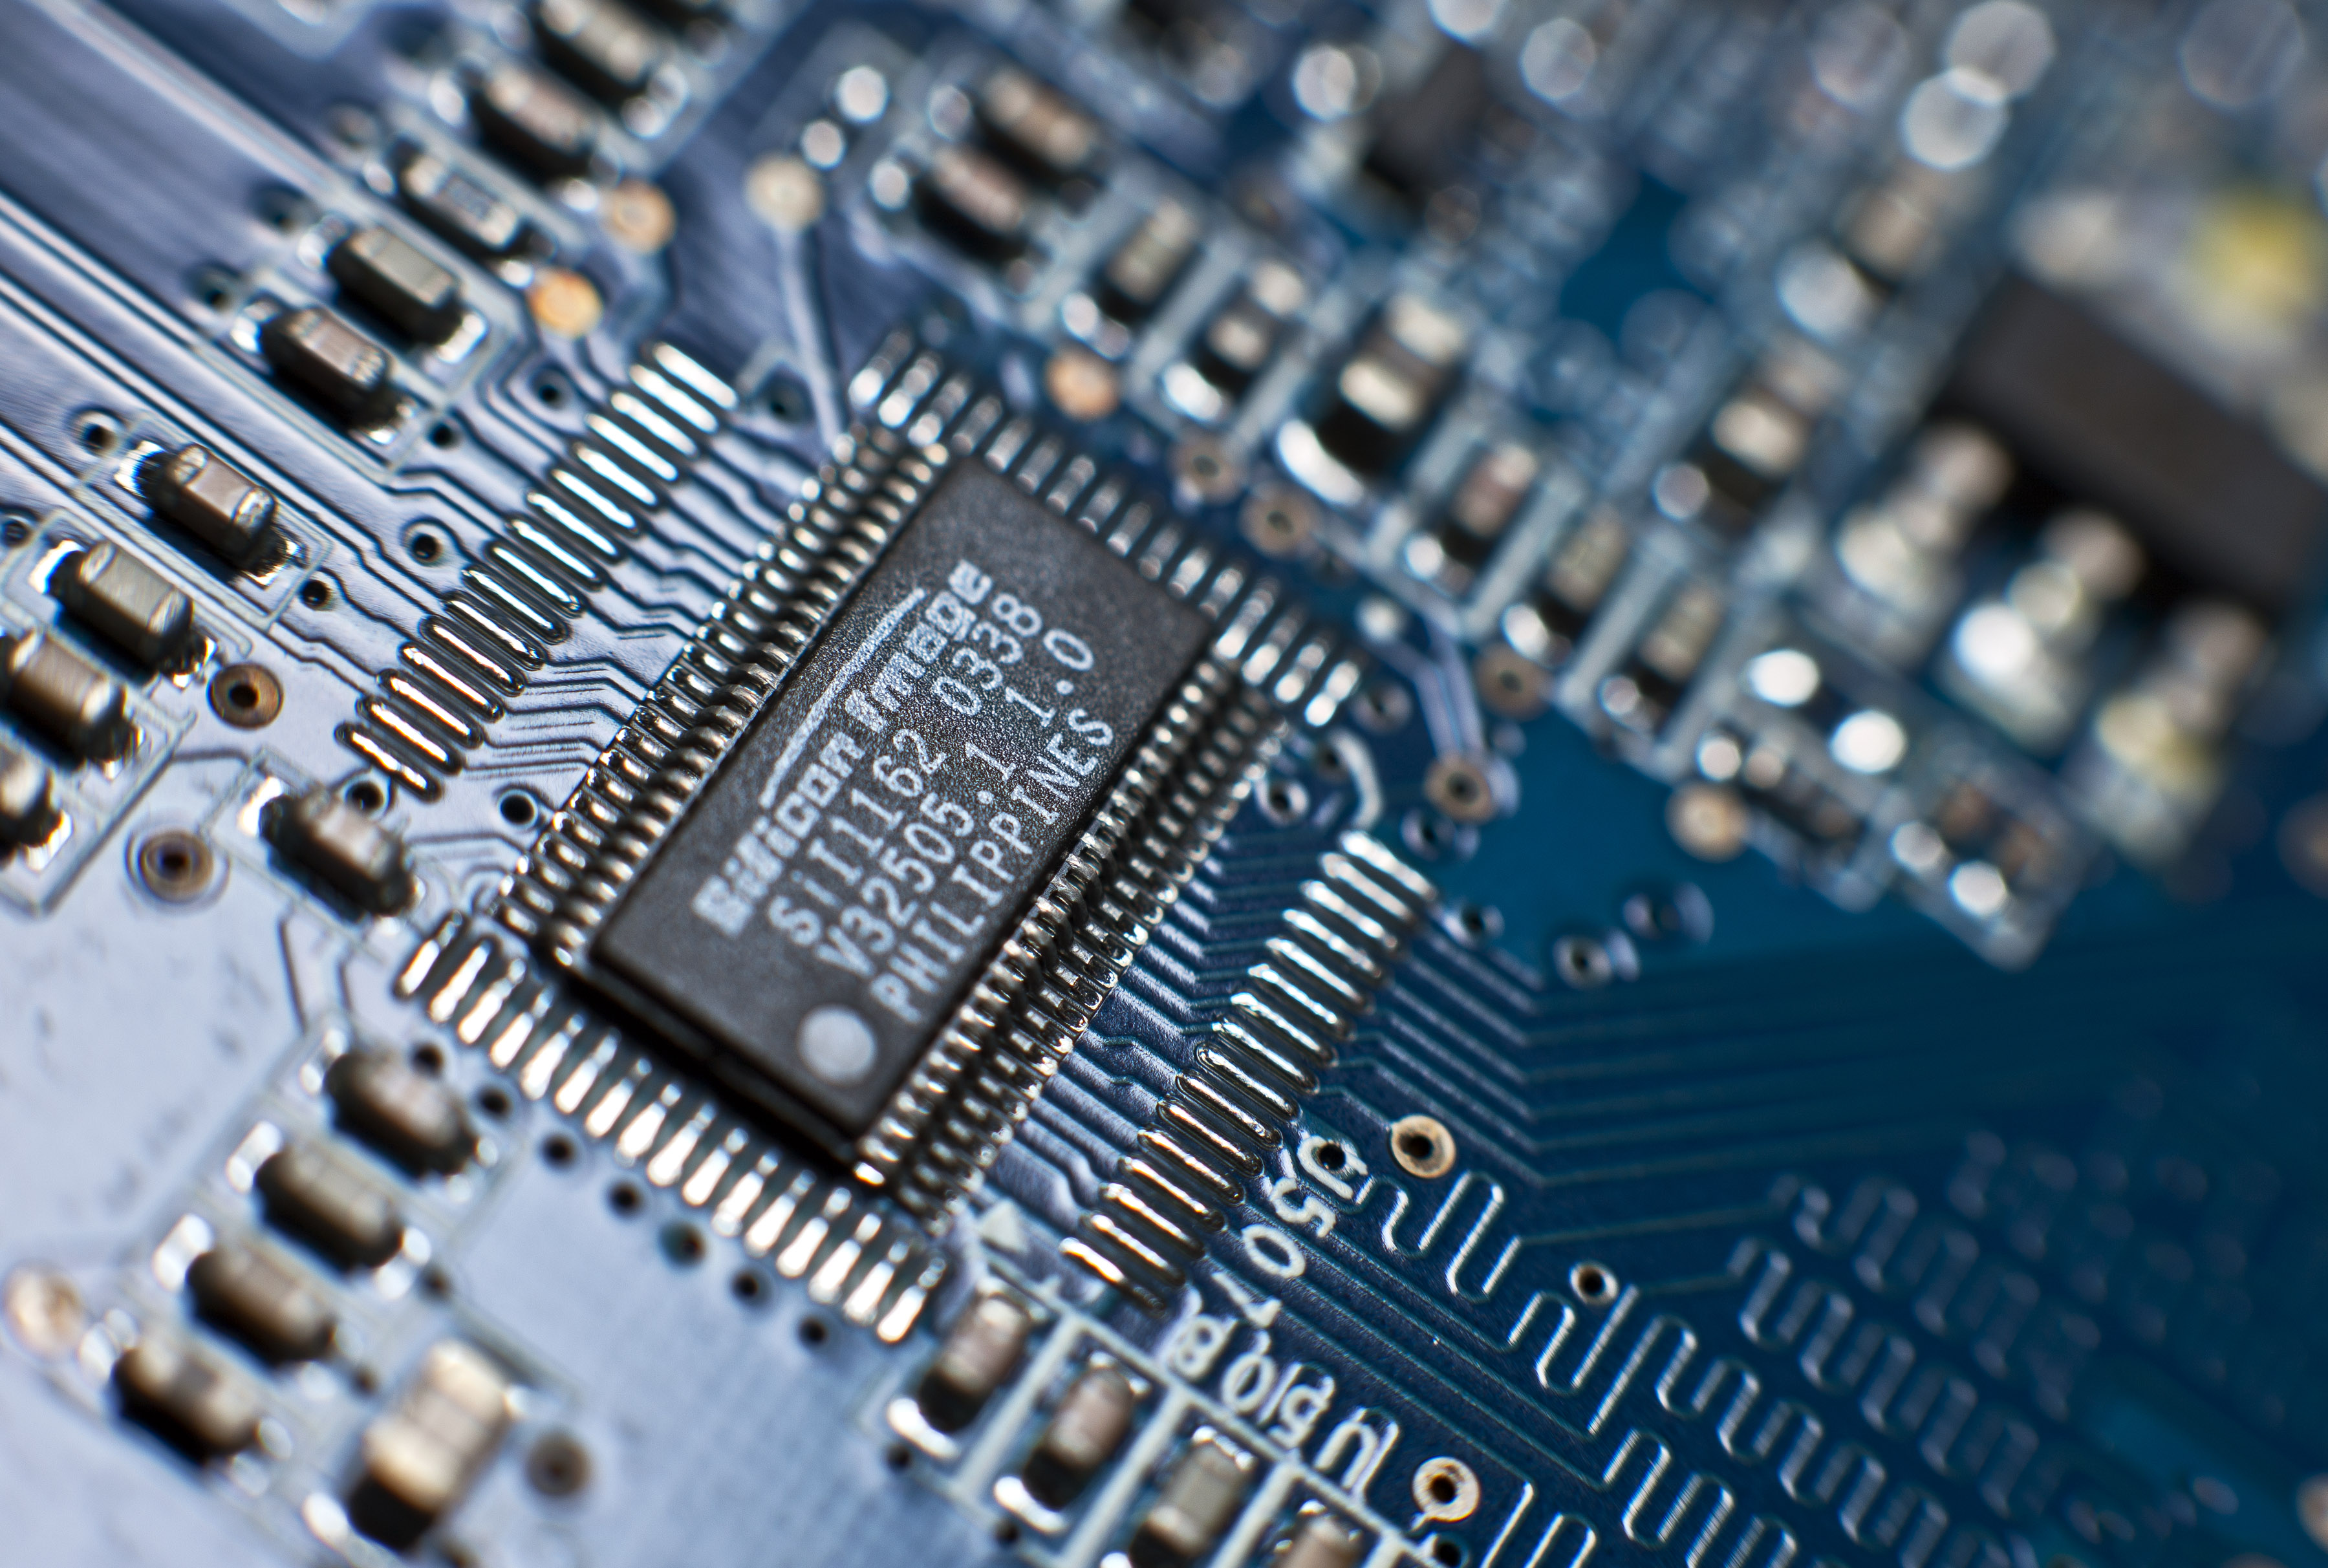 Decreasing Mistakes In Manufactured Printed Circuit Board Design Boards Pcb Or Pcbs Are The Driving Forces Behind Virtually Everything Society Uses Today From Smartphones And Computers To Car Displays